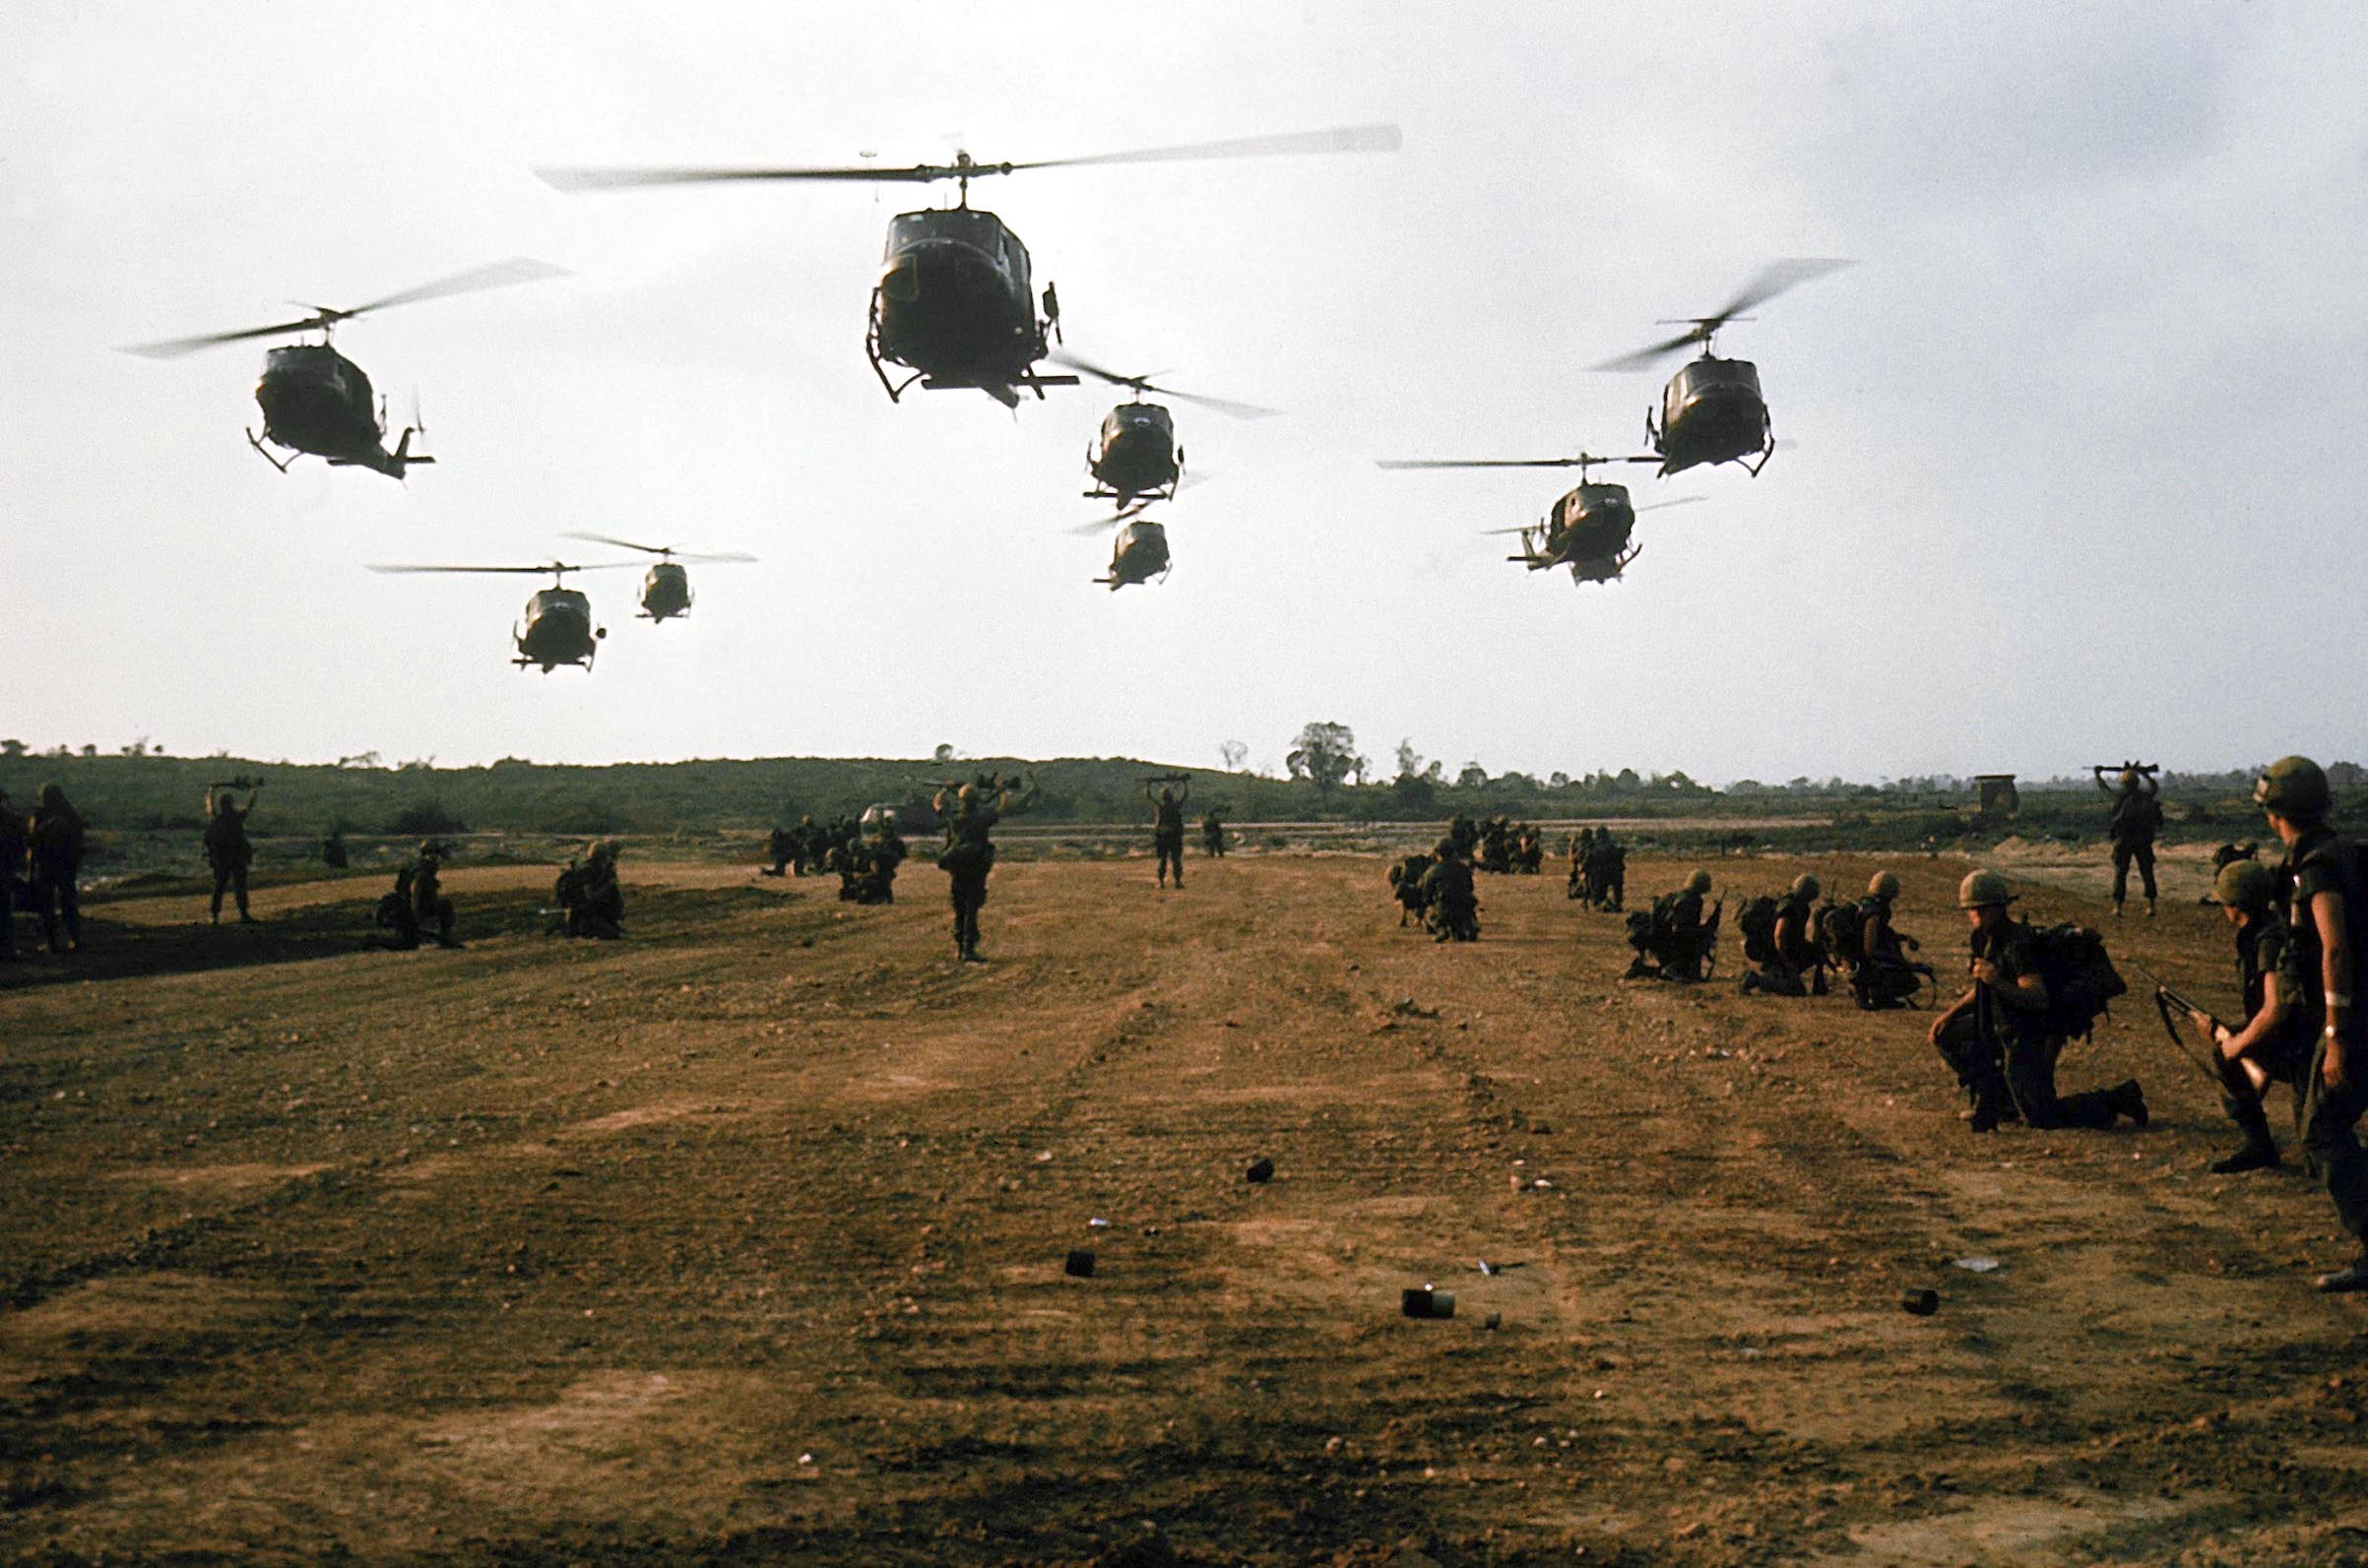 American military Bell UH-1D Iroquois ( Huey ) helicopters in flight during the My Lai massacre on March 16, 1968 in My Lai, South Vietnam.